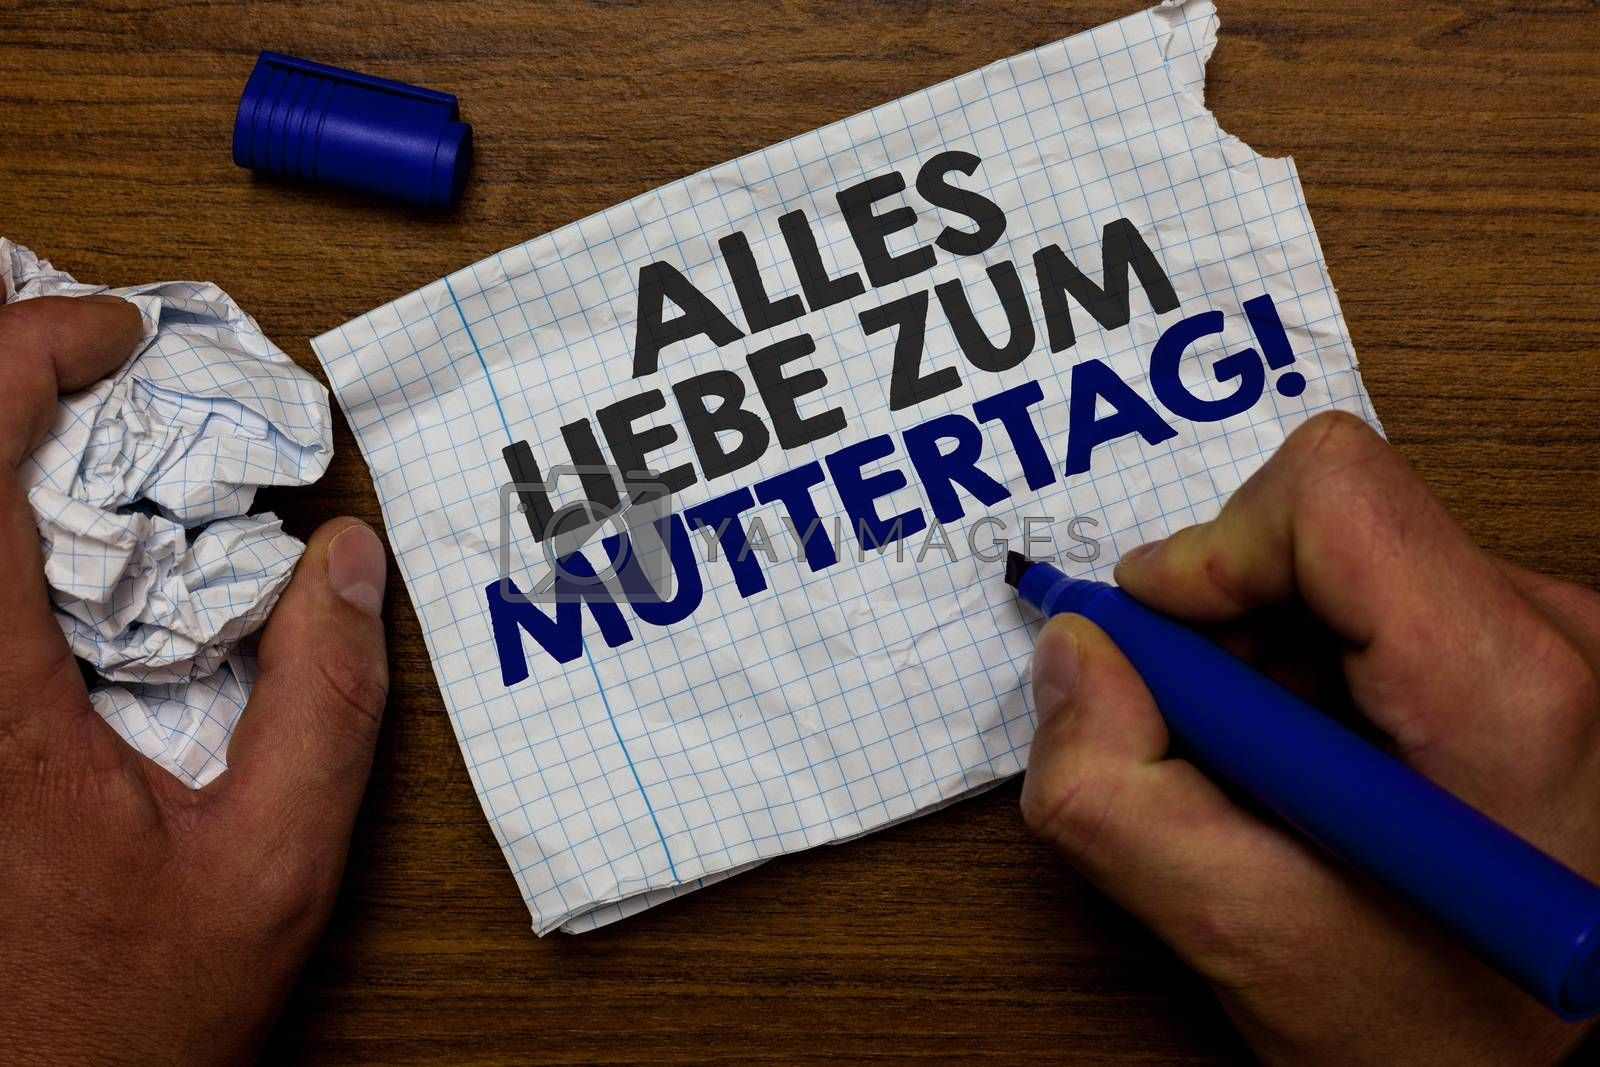 Word writing text Alles Liebe Zum Muttertag. Business concept for Happy Mothers Day Love Good wishes Affection Hand hold paper lob and blue marker wooden base with torn white written page. by Artur Szczybylo